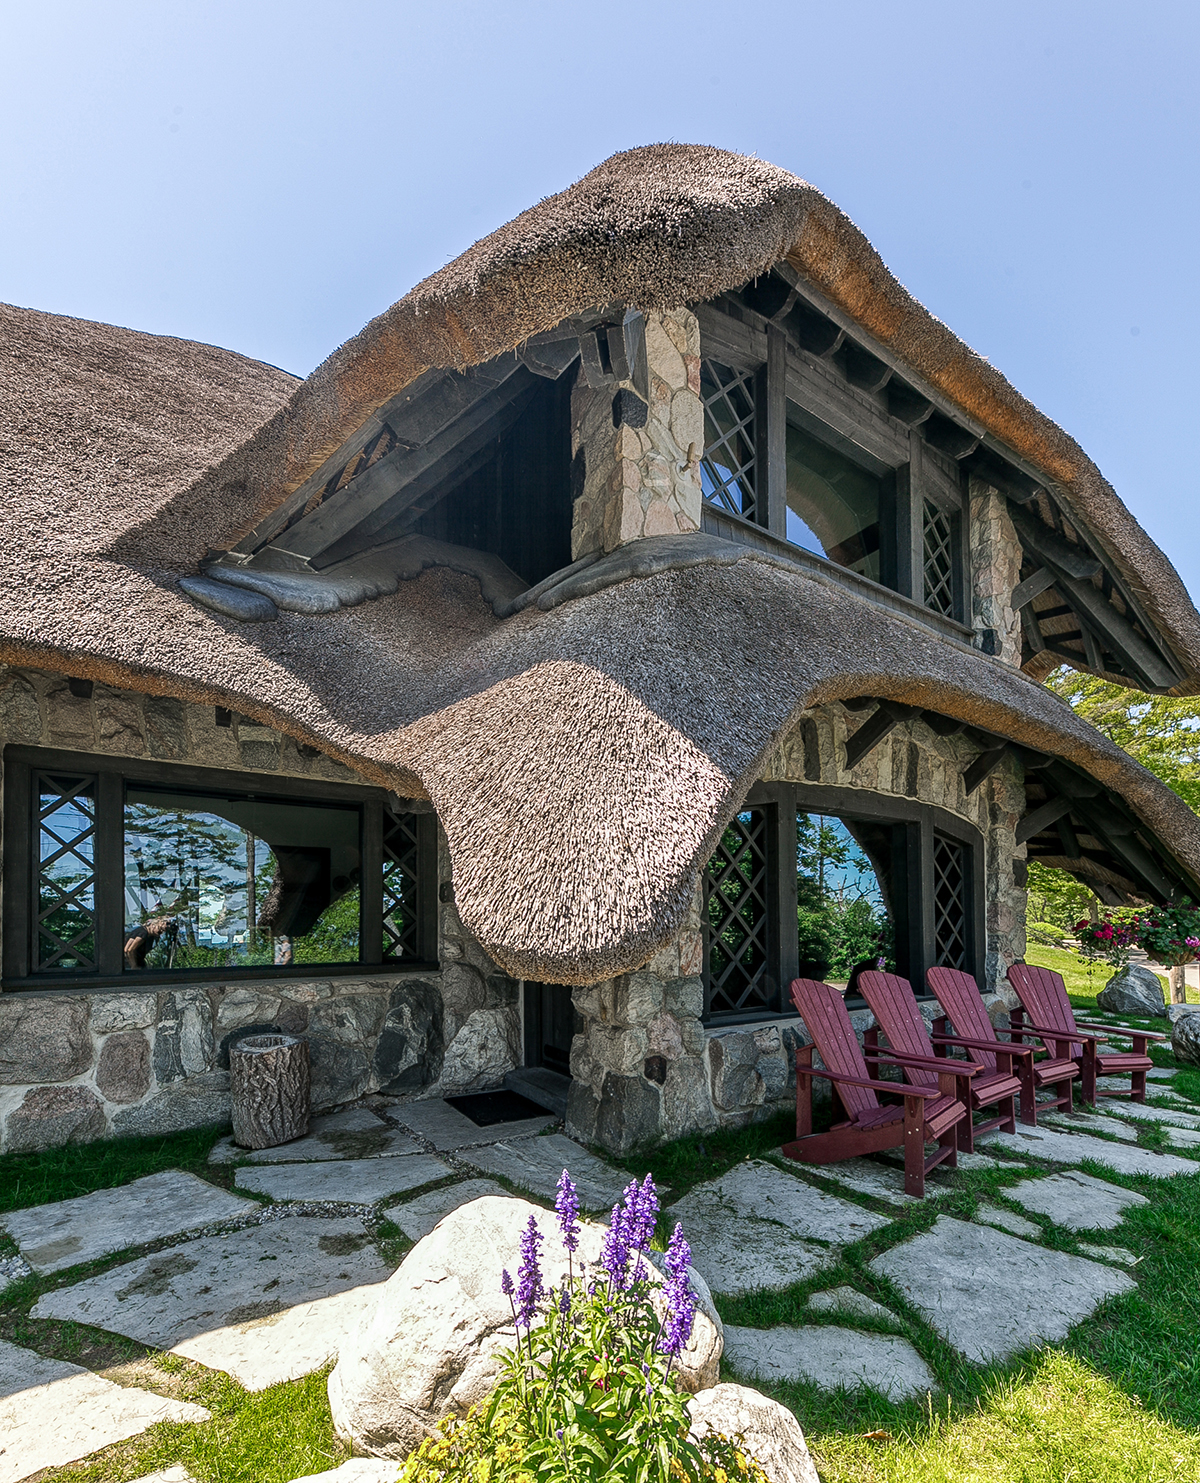 Mushroom House thatched roof in Charlevoix Michigan